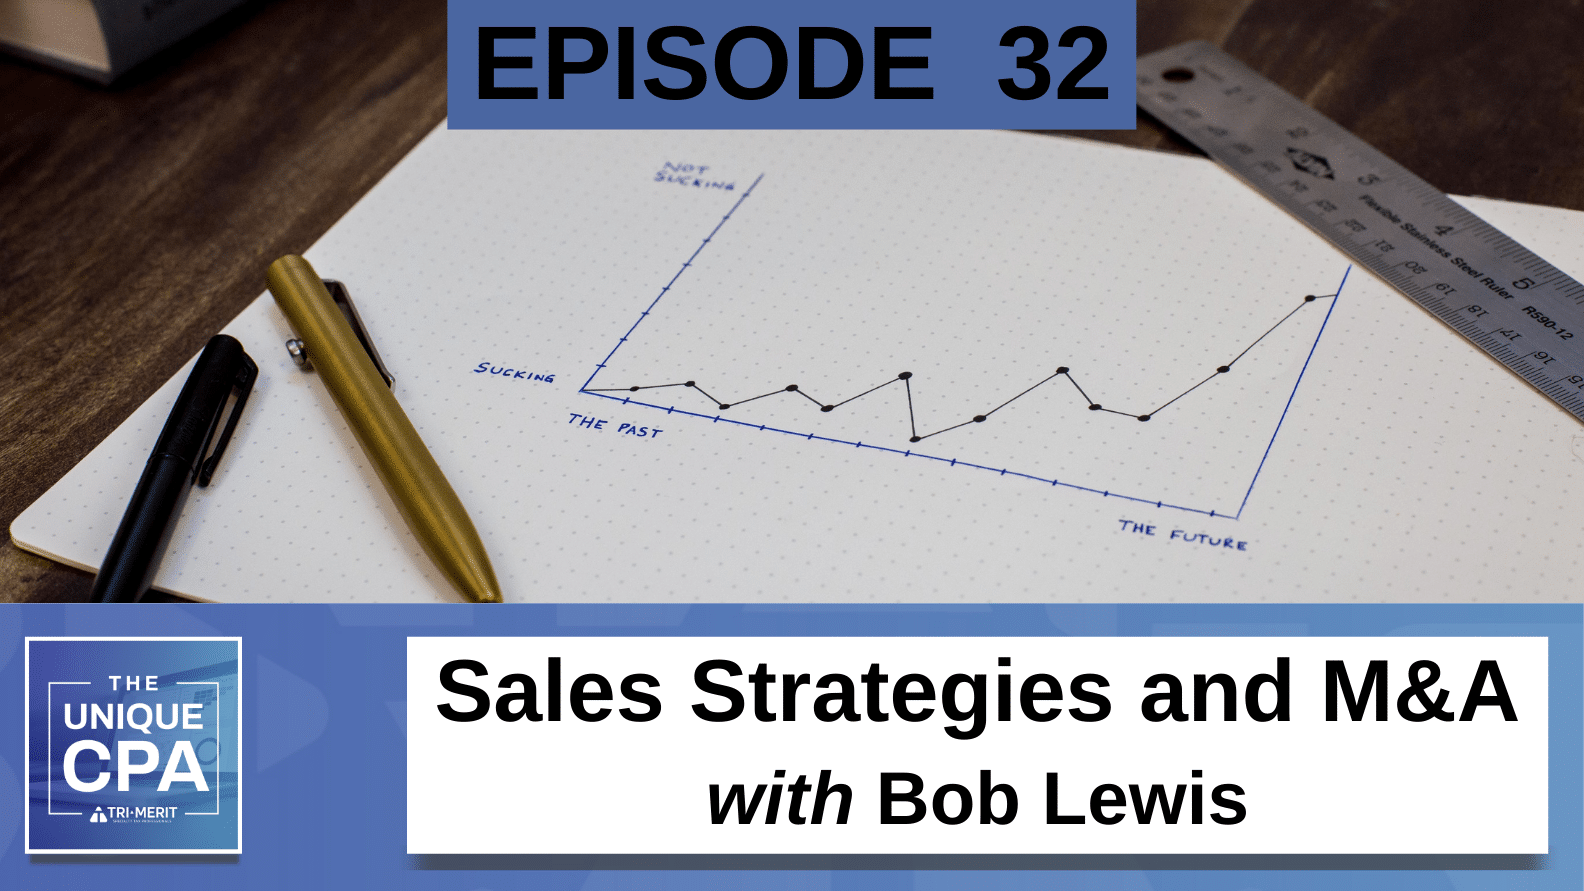 Unique CPA Featured Image Ep 32 Bob Lewis - Sales Strategies and M&A - Tri-Merit